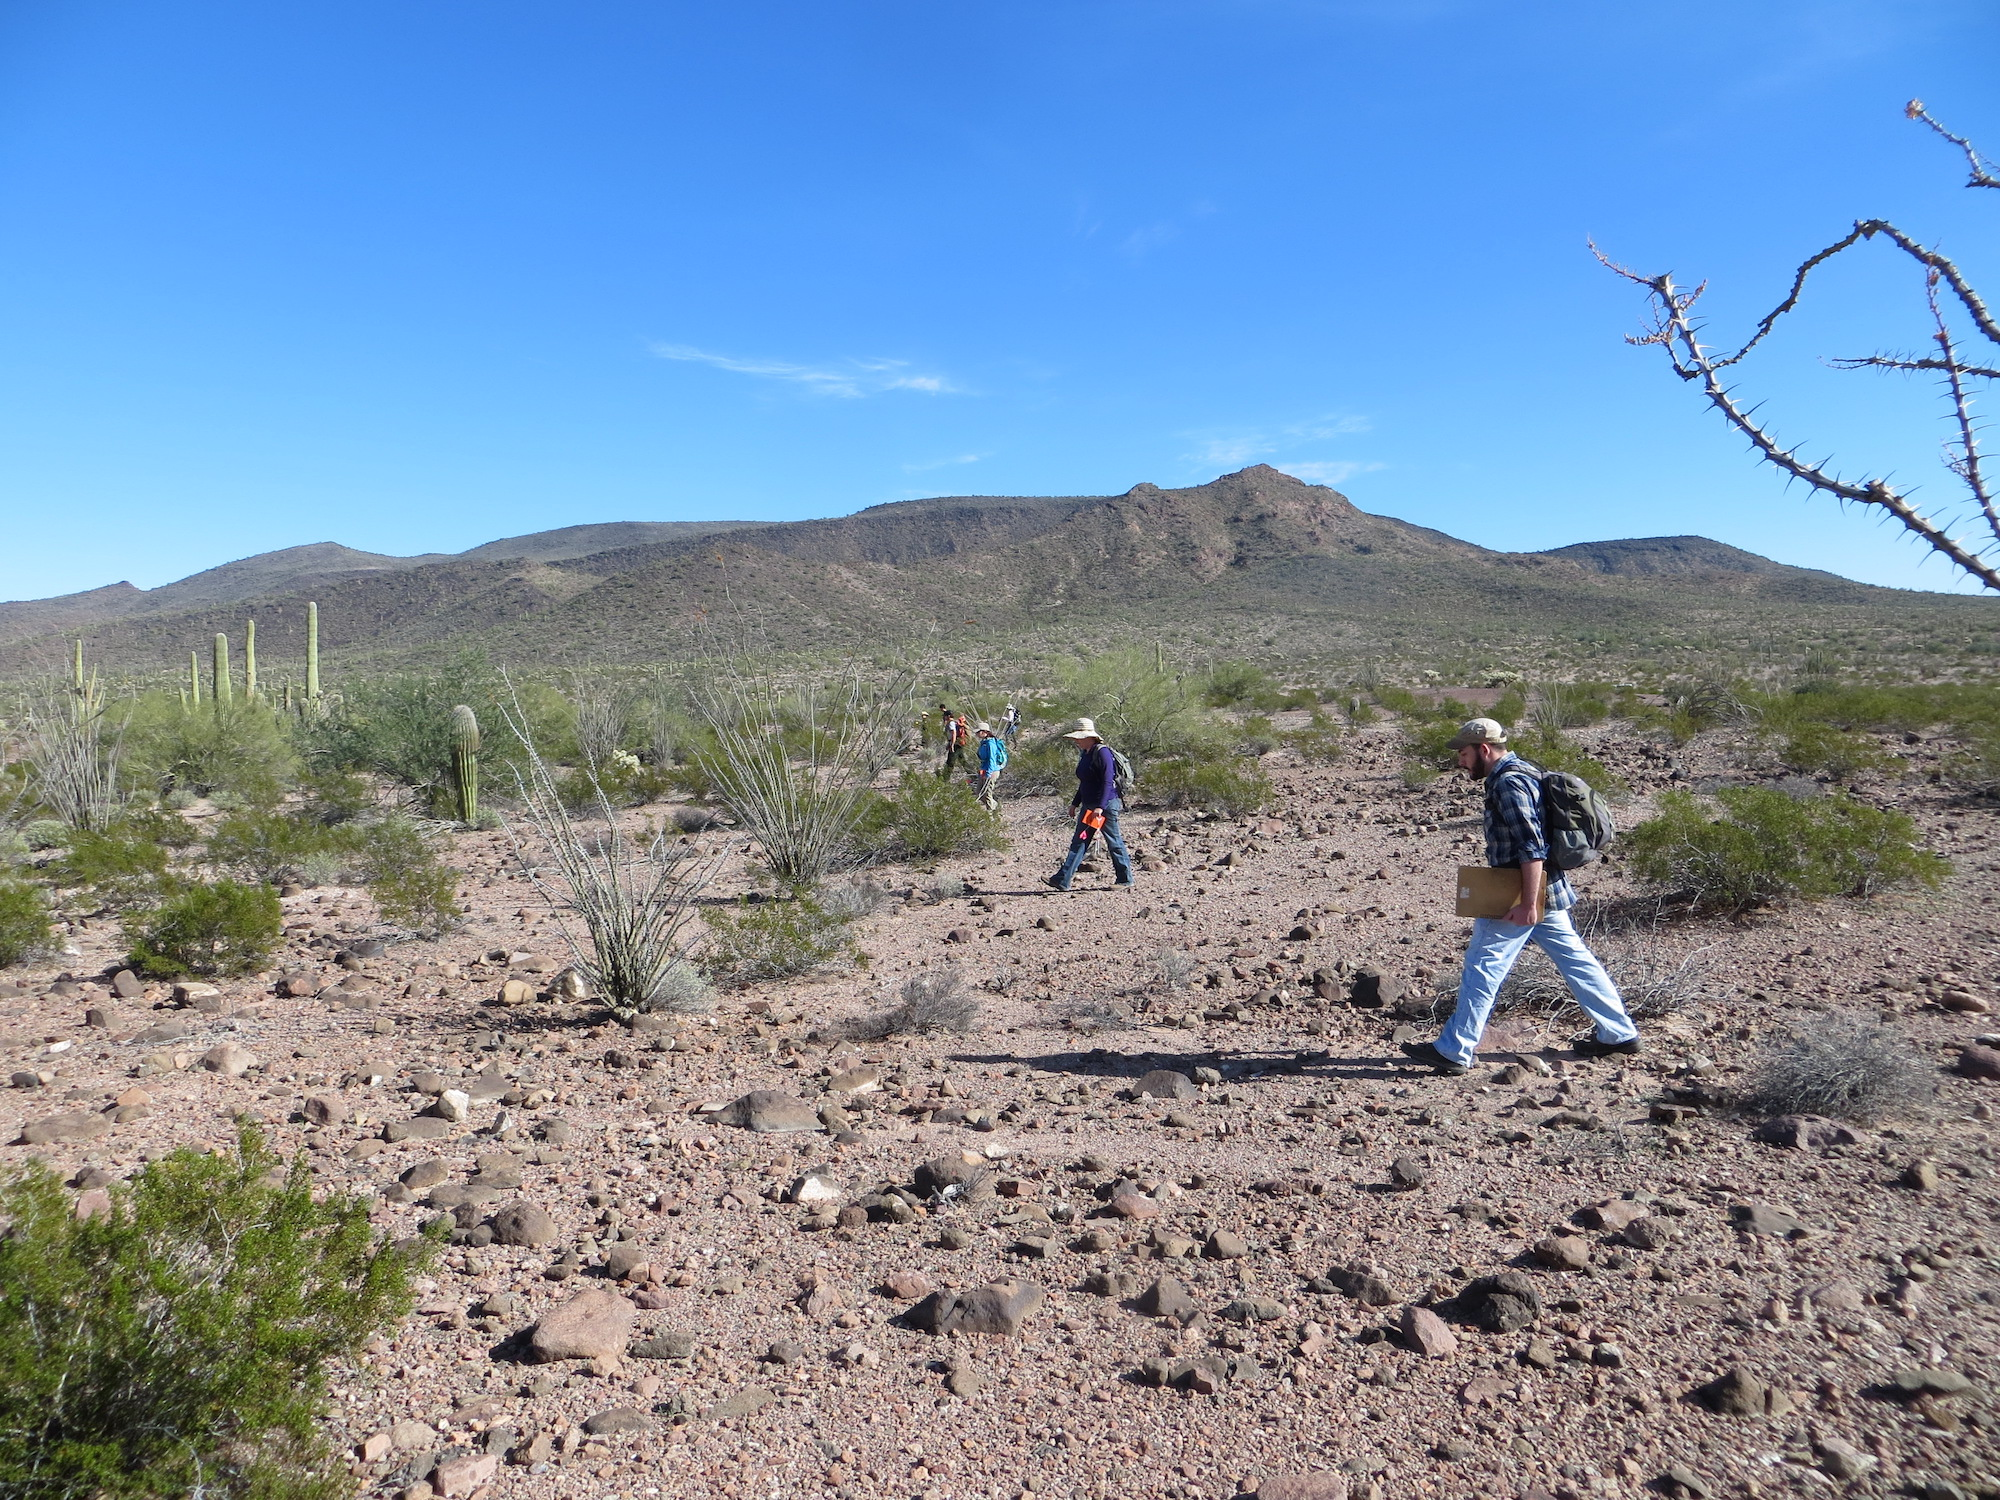 Researchers do an archaeological survey in search of trails to document. Once a trail was found, researchers would trace it as far as it would lead them.